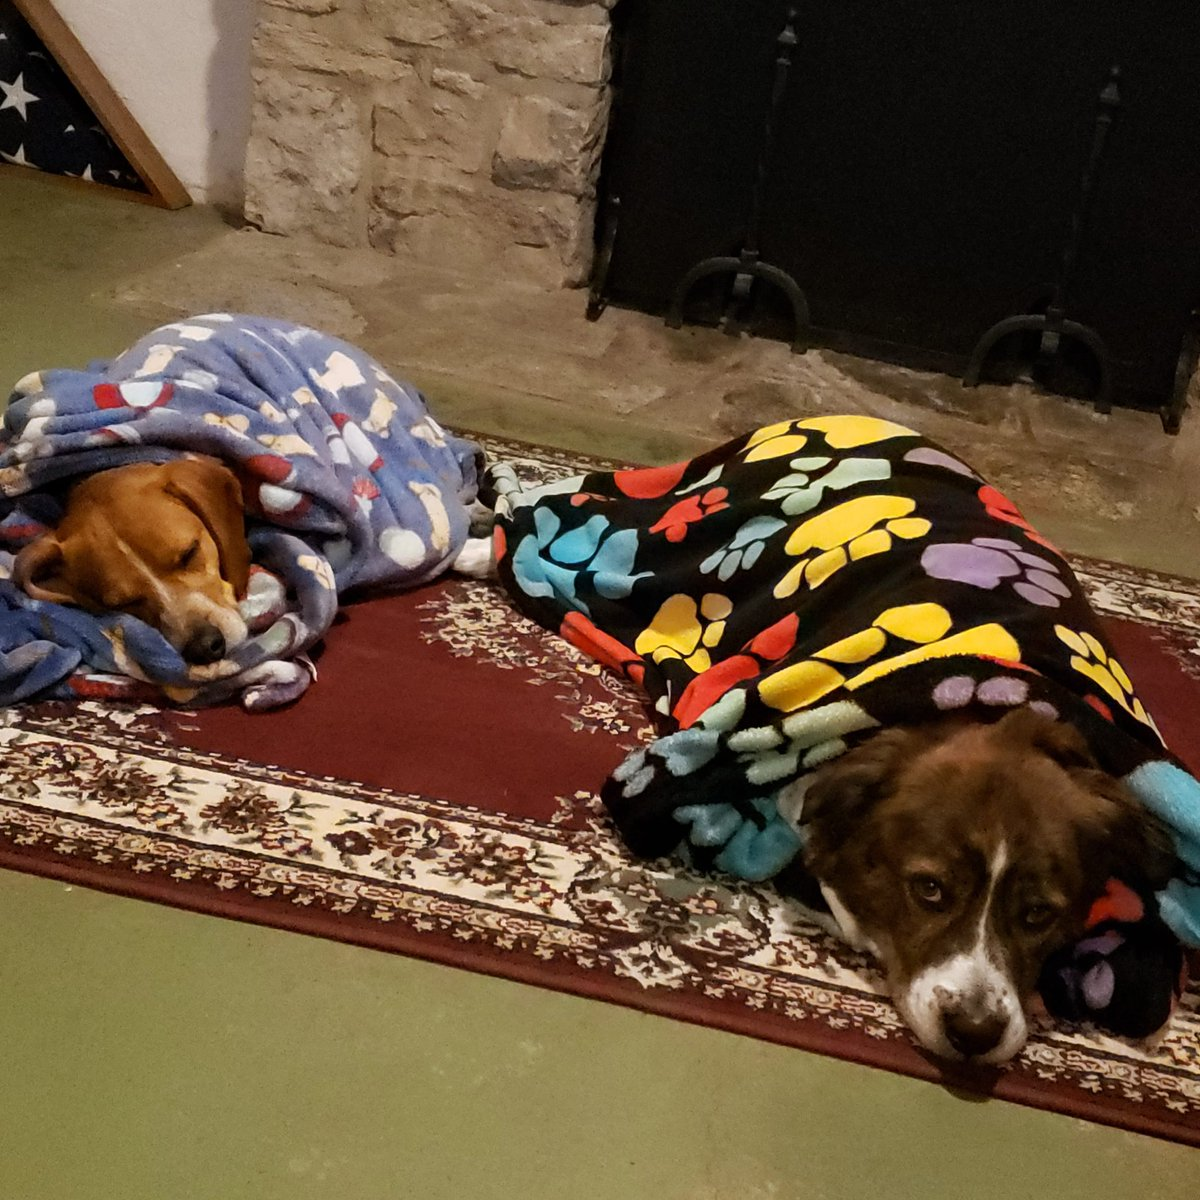 CUTENESS alert!The boys are so spoiled Their blankets just came out of the dryer, so now it's naptime#redh_realtor #realtorlife #cincinnati #mthealthy #mypeace #thankful #puppylove #jasper #ripley #puppylife #adopt #rehome #rescue #rescuedogsofinstagram #dogsofinstagrampic.twitter.com/YatX2jdBxy